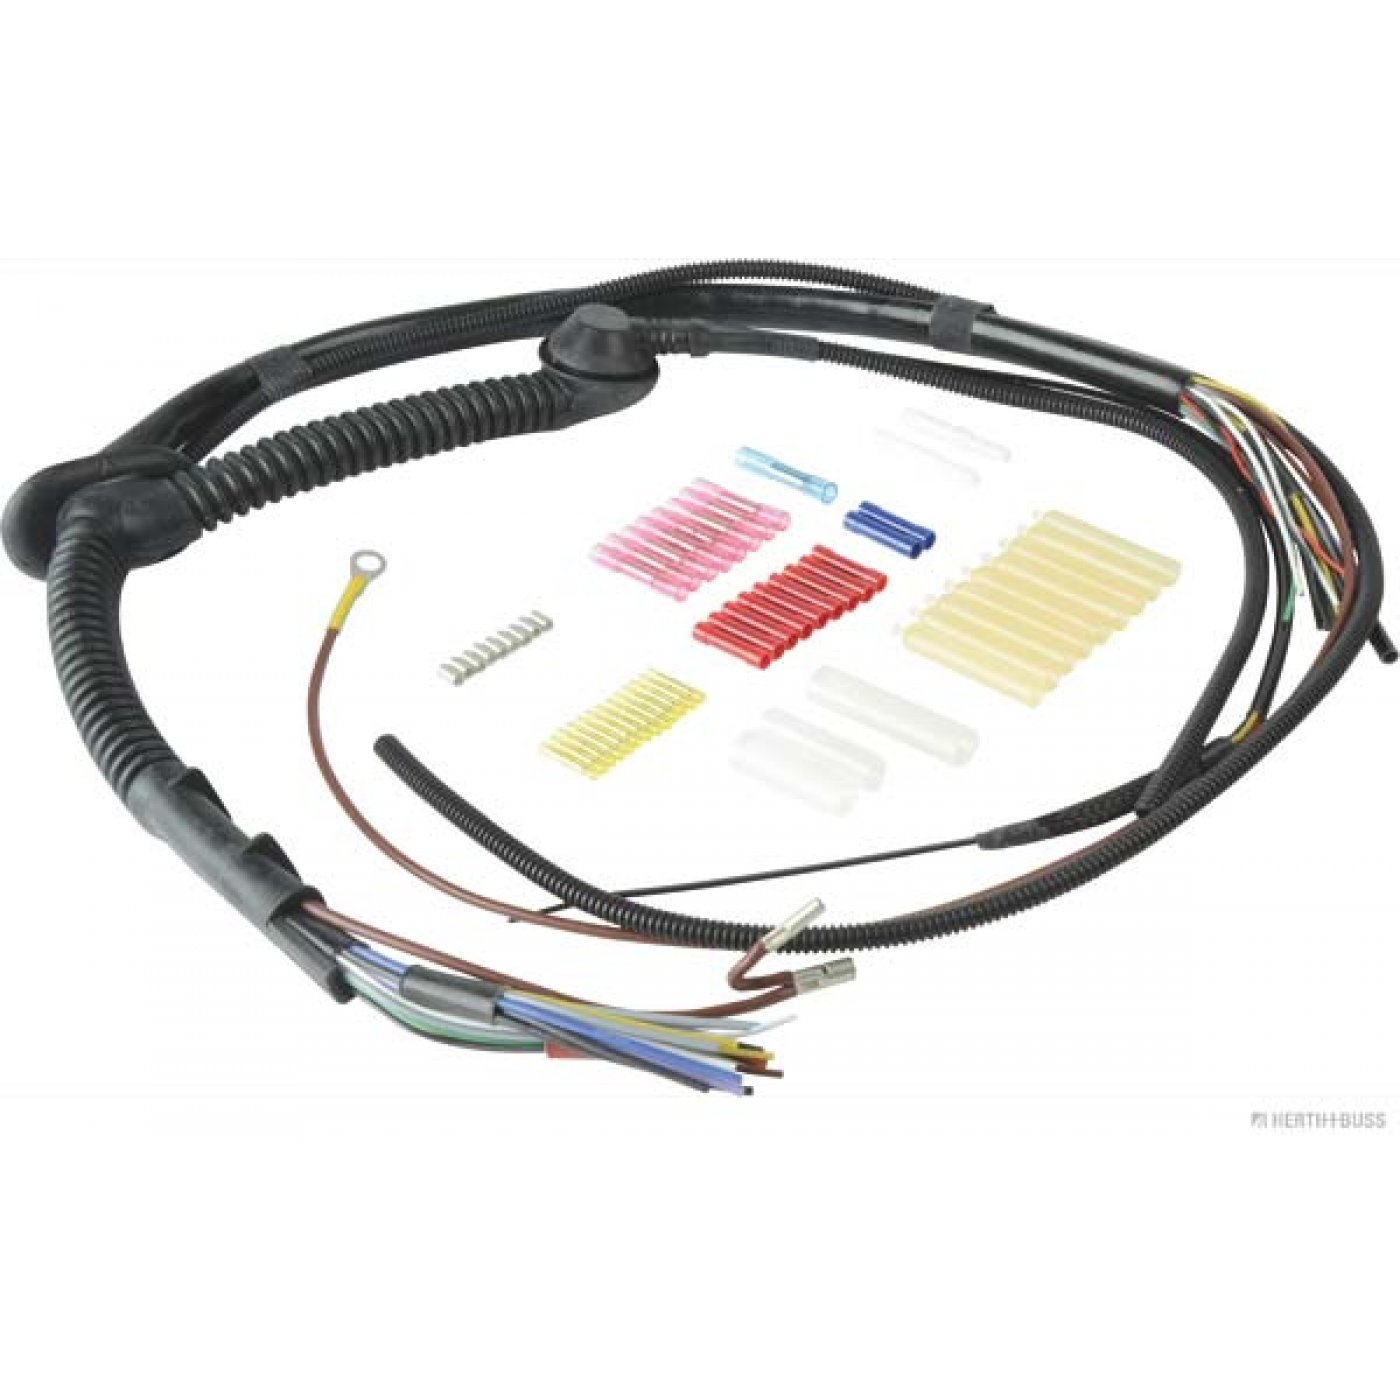 hight resolution of automotive wiring harness repair kit 36 wiring diagram car stereo wiring harness hhr wiring harness 2579